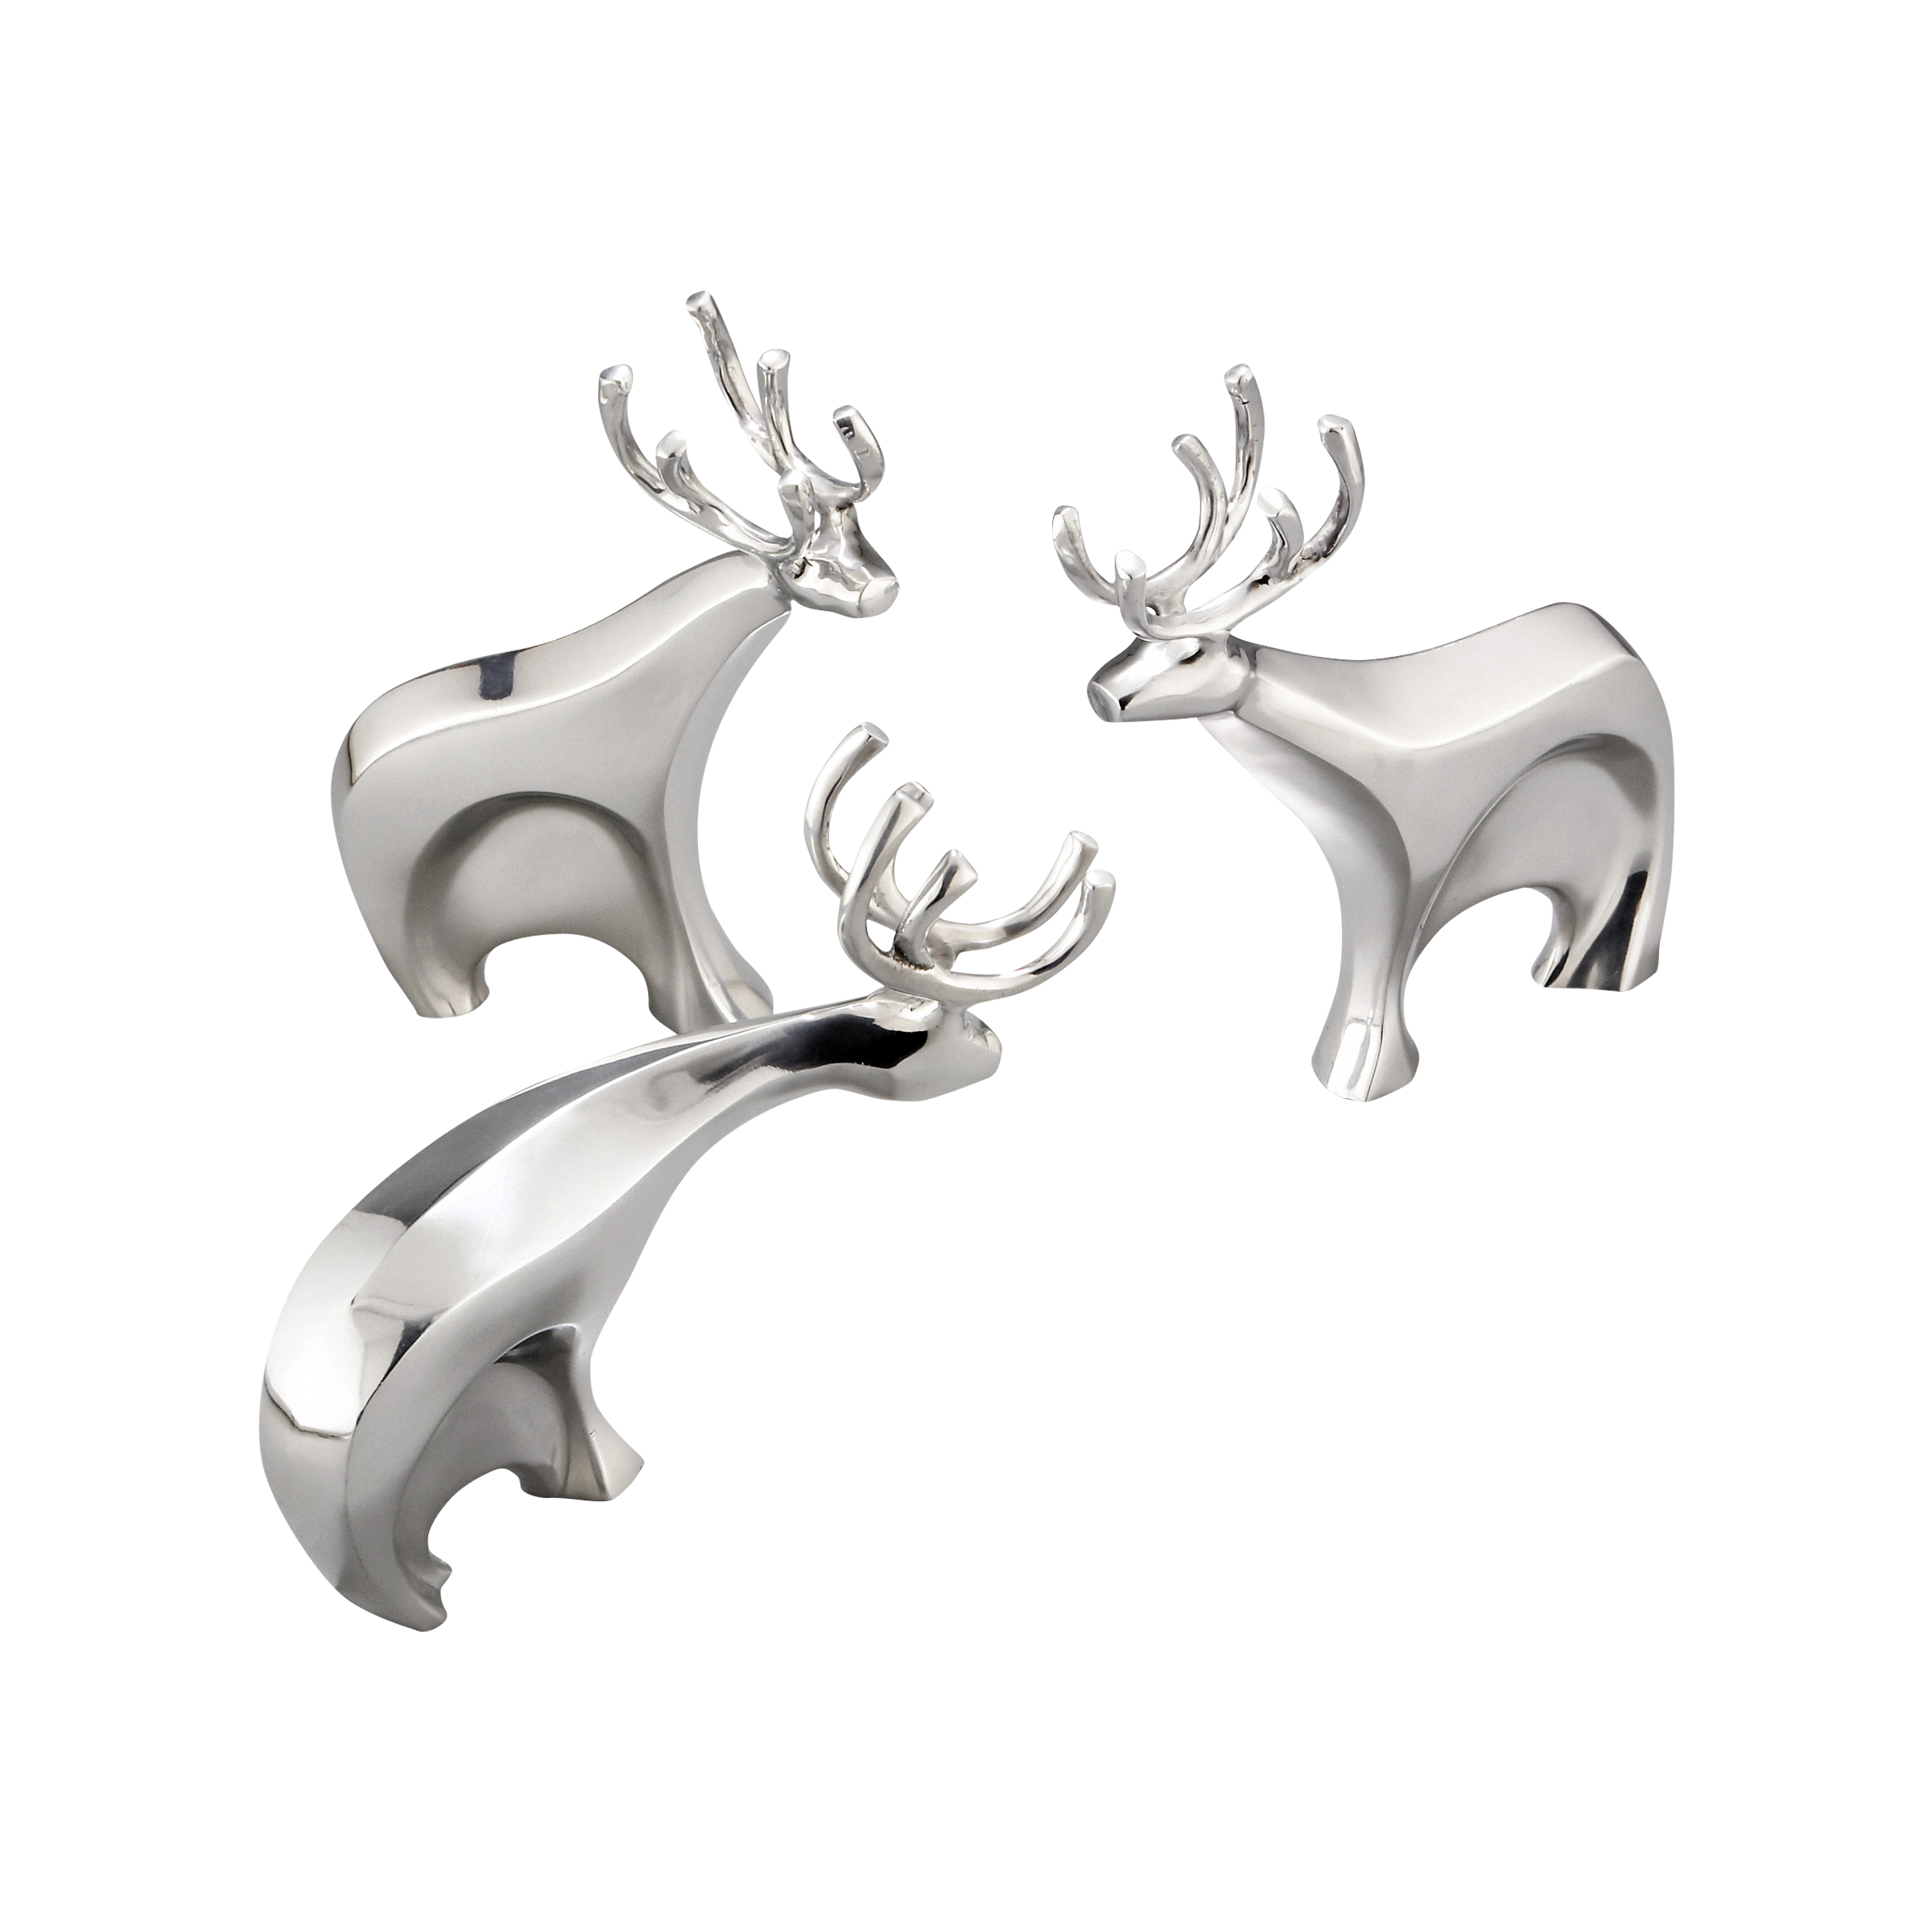 Dasher Reindeer Figurine Set image number 0